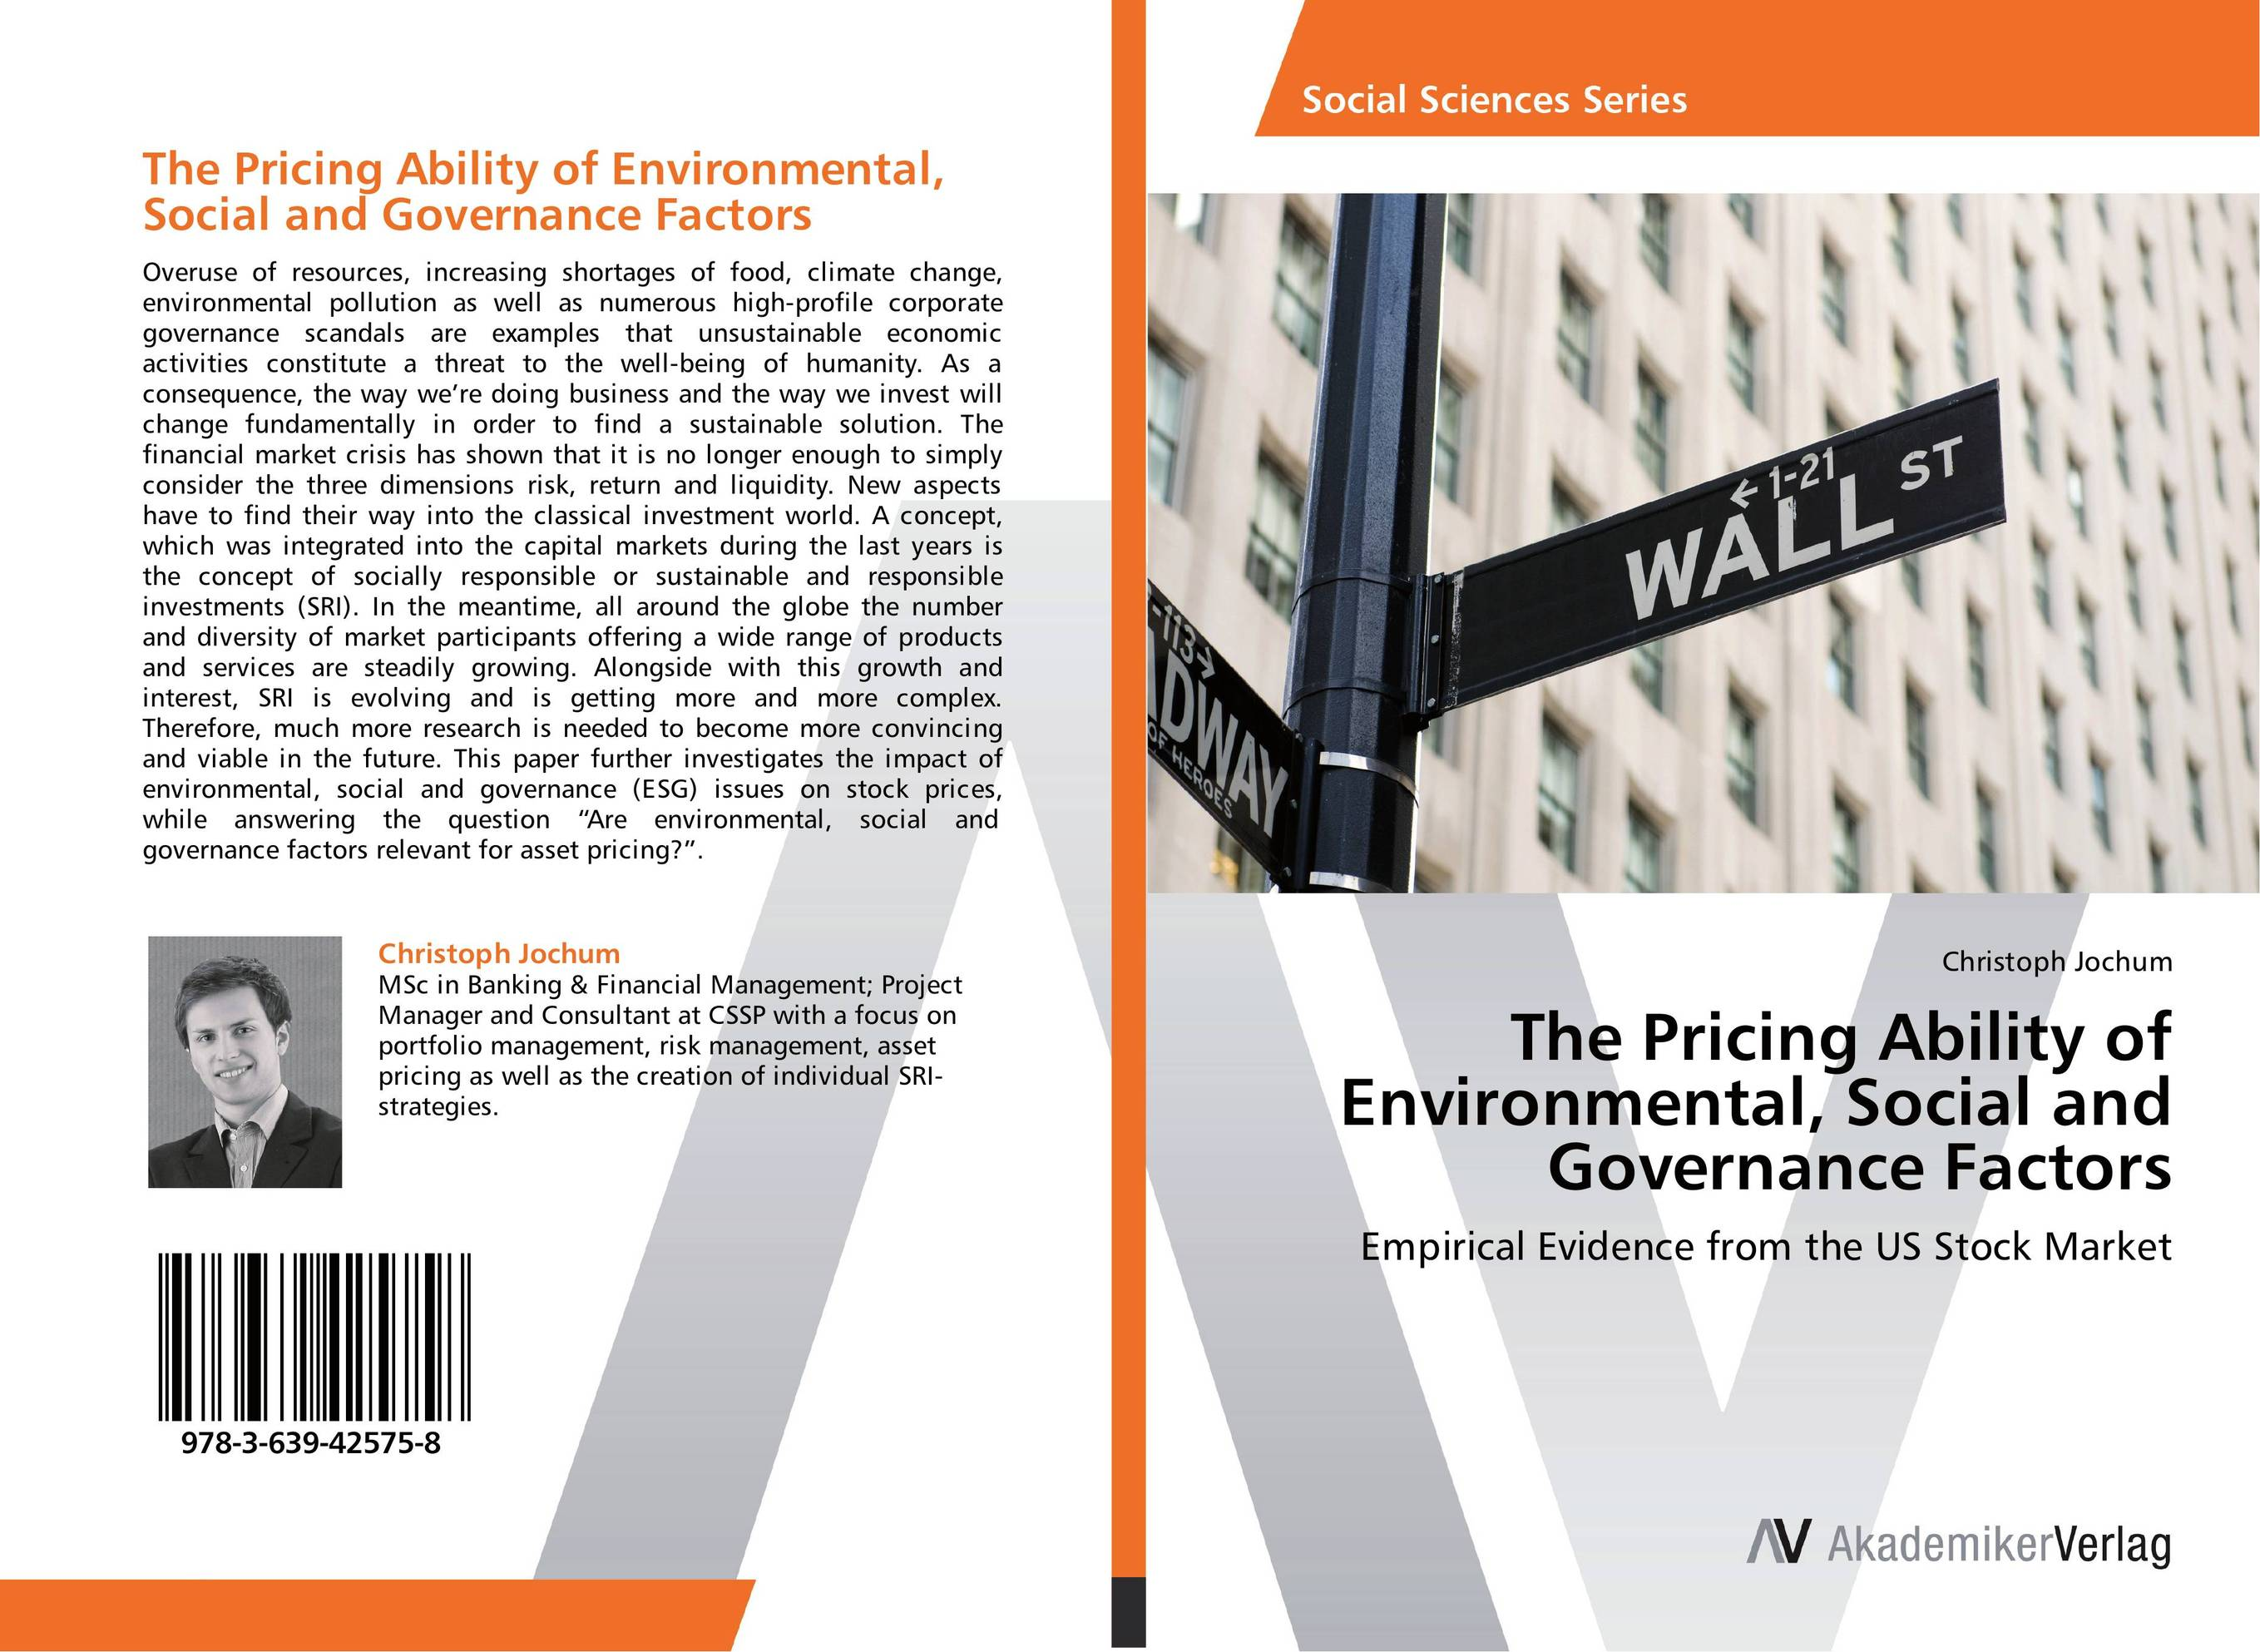 The Pricing Ability of Environmental, Social and Governance Factors